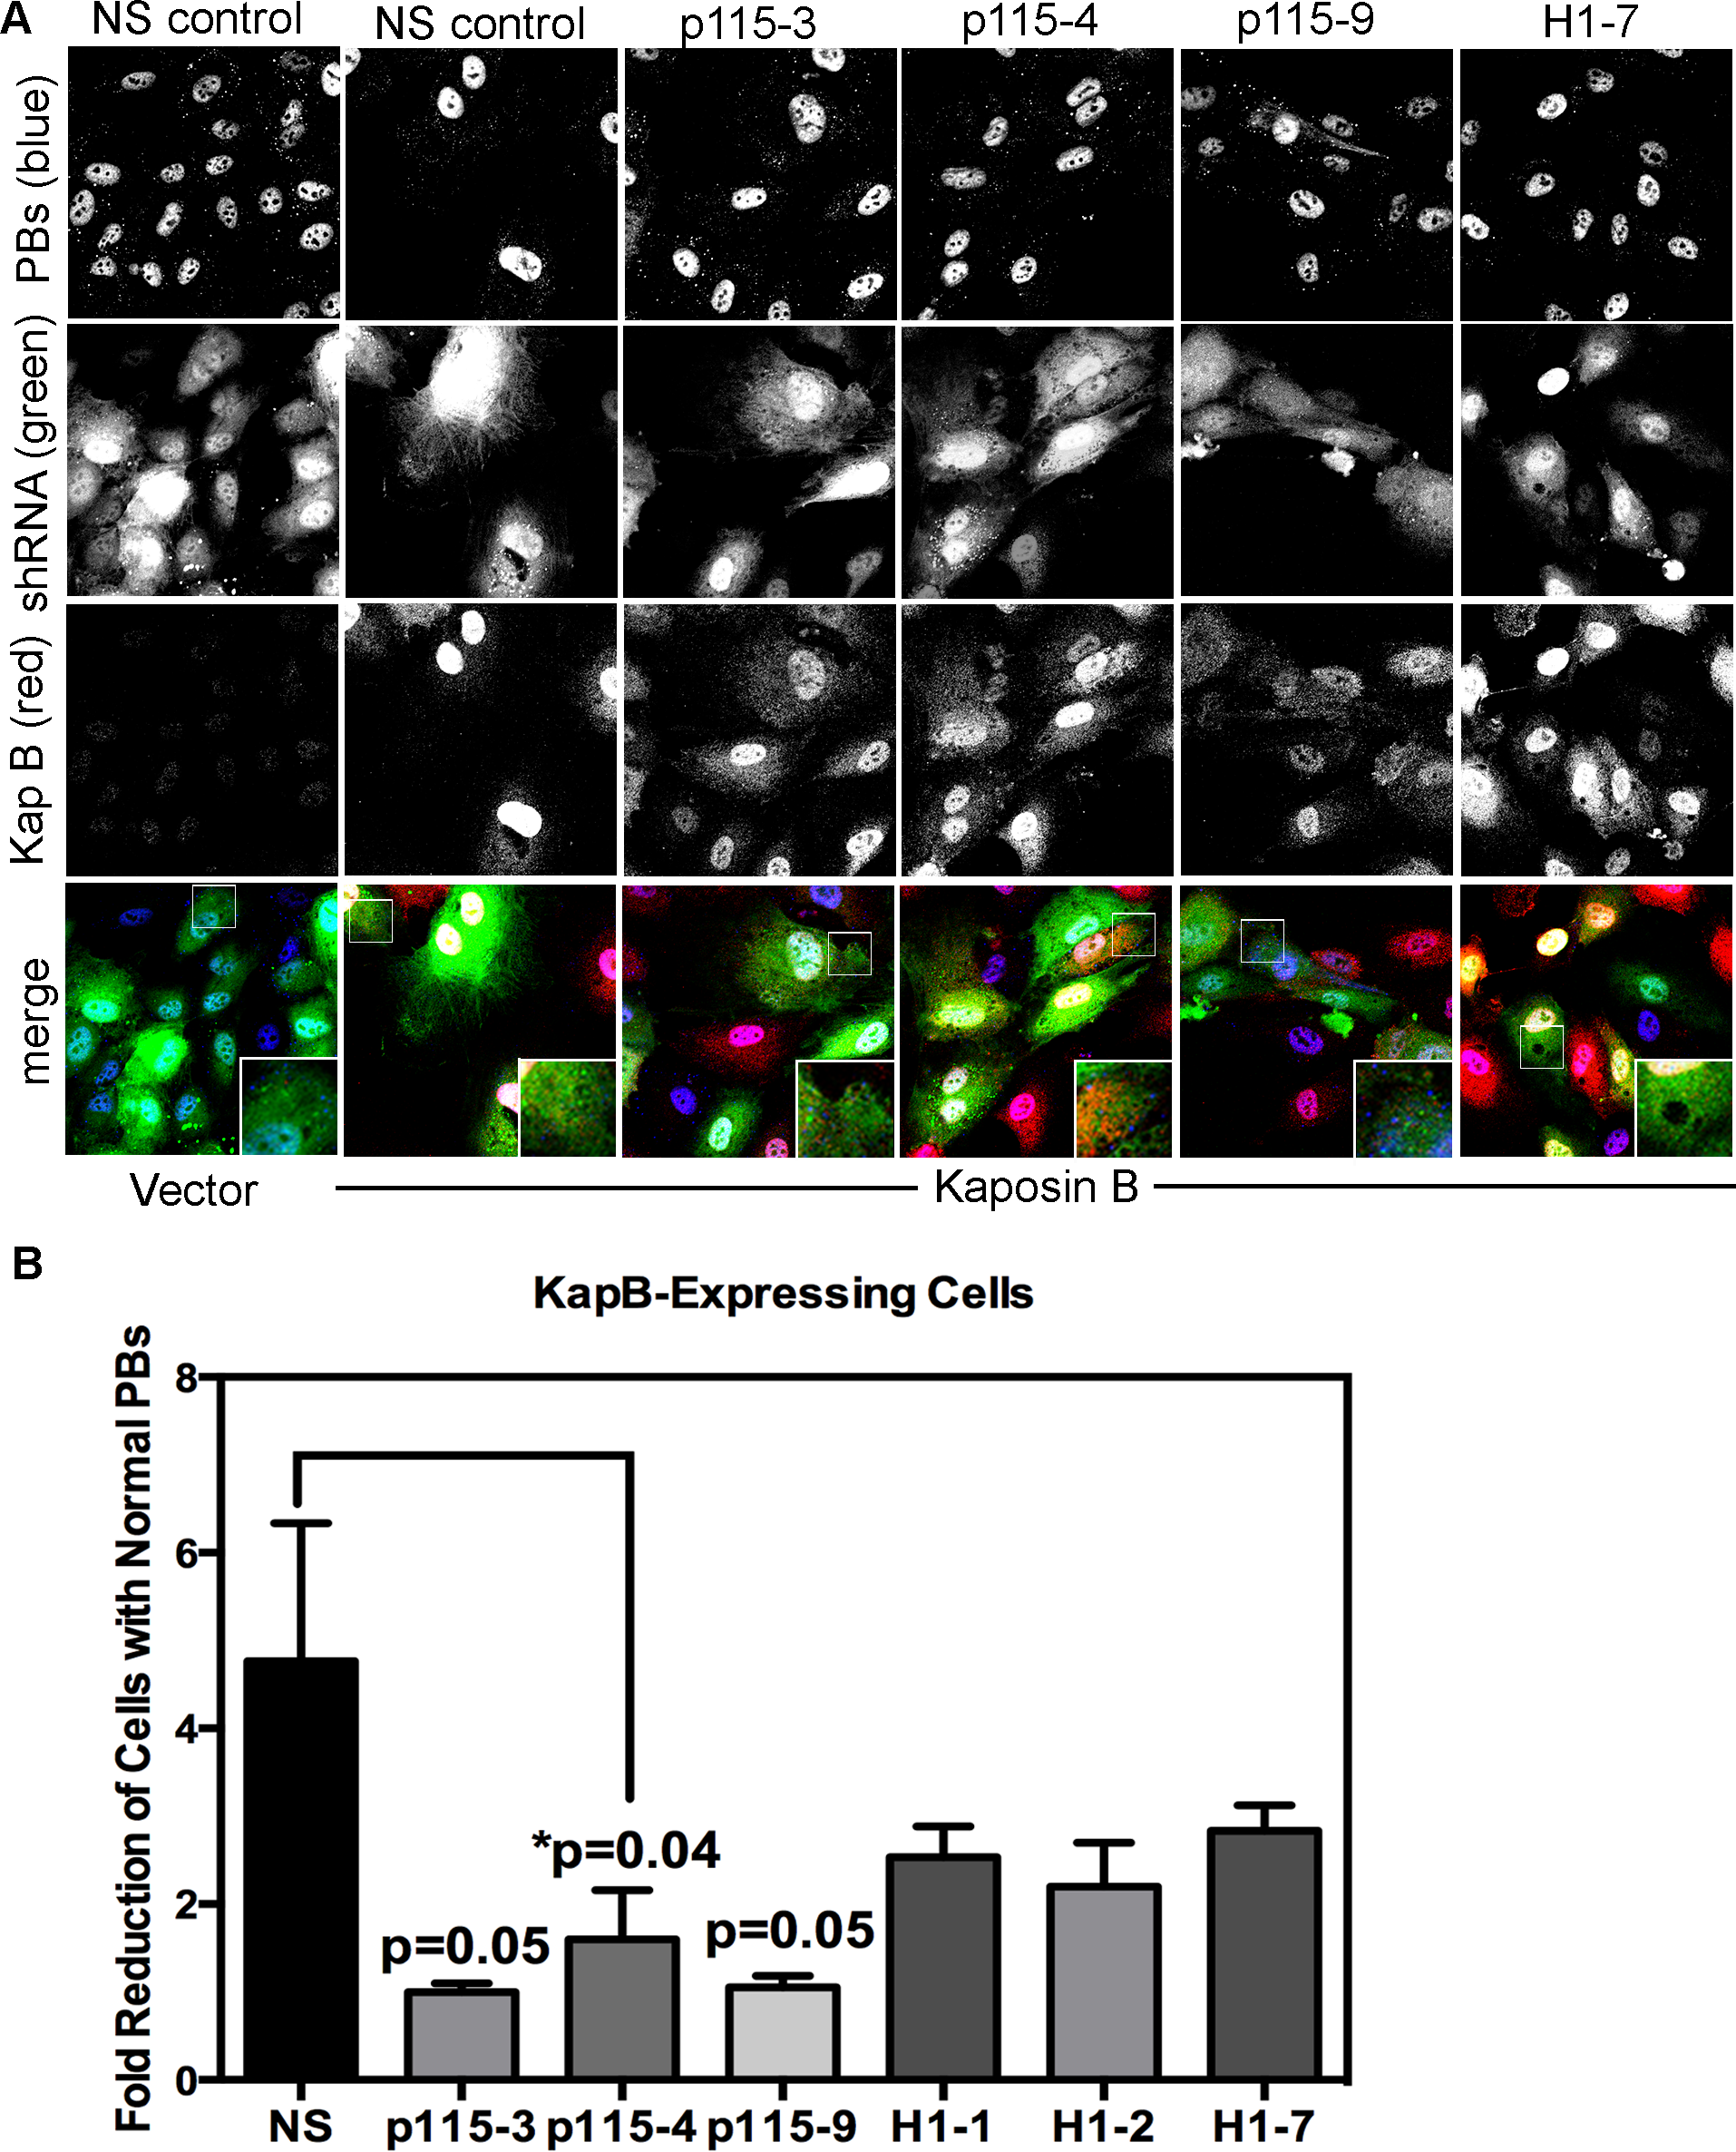 Knockdown of the Rho guanine exchange factor (GEF) p115 prevents KapB-induced modification of p-body dynamics.